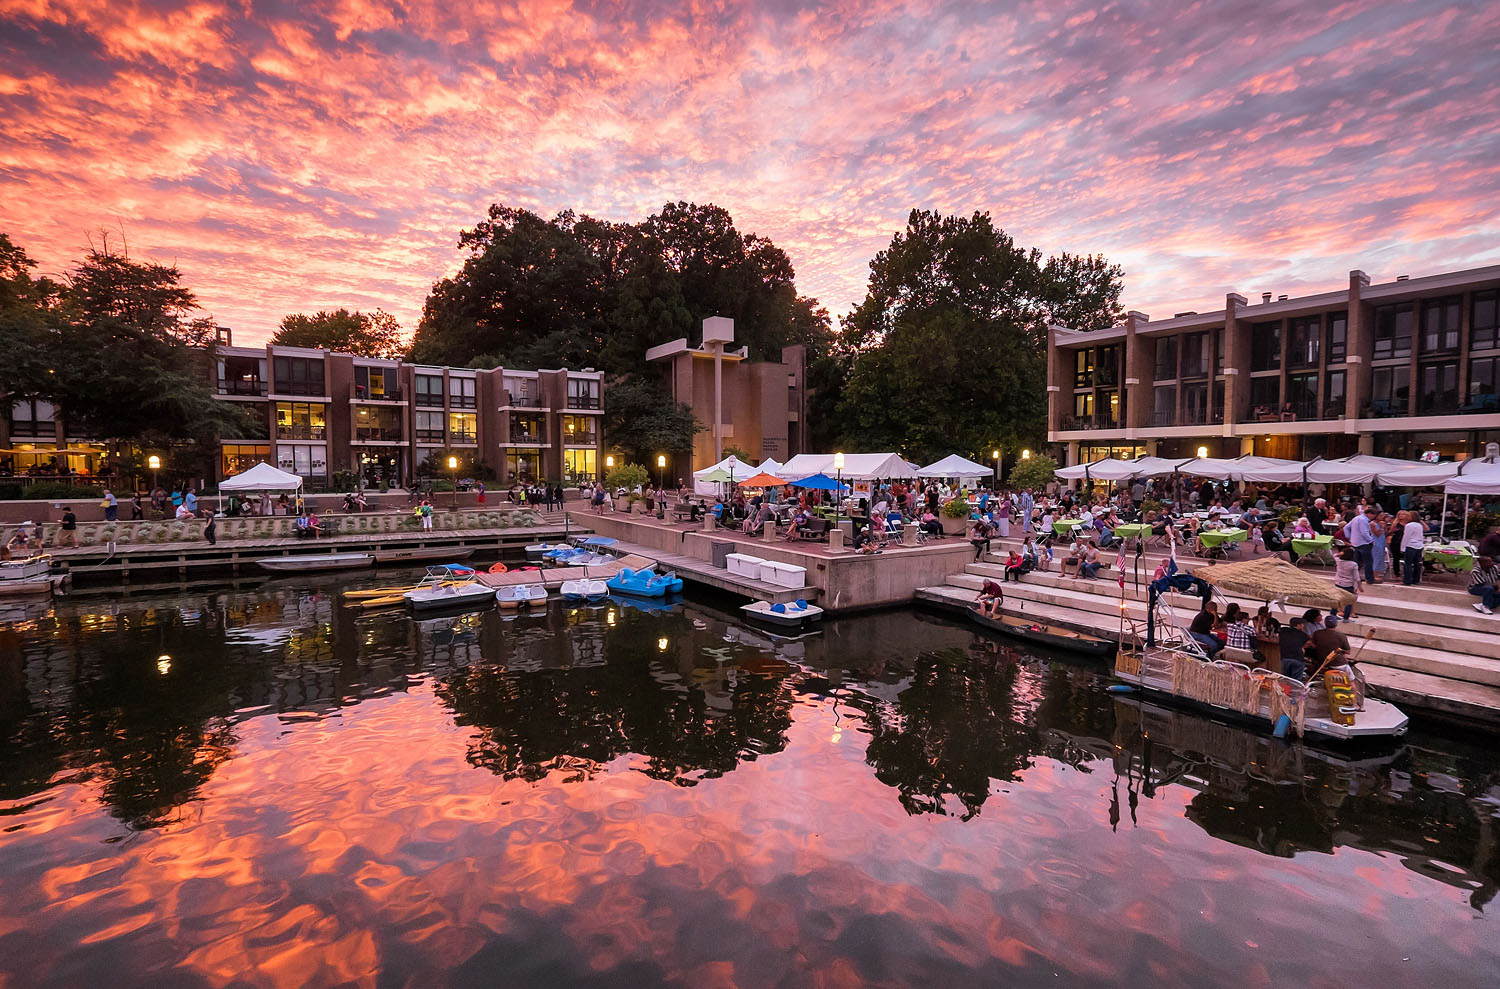 Lake Anne Jazz Festival in Reston, Virginia